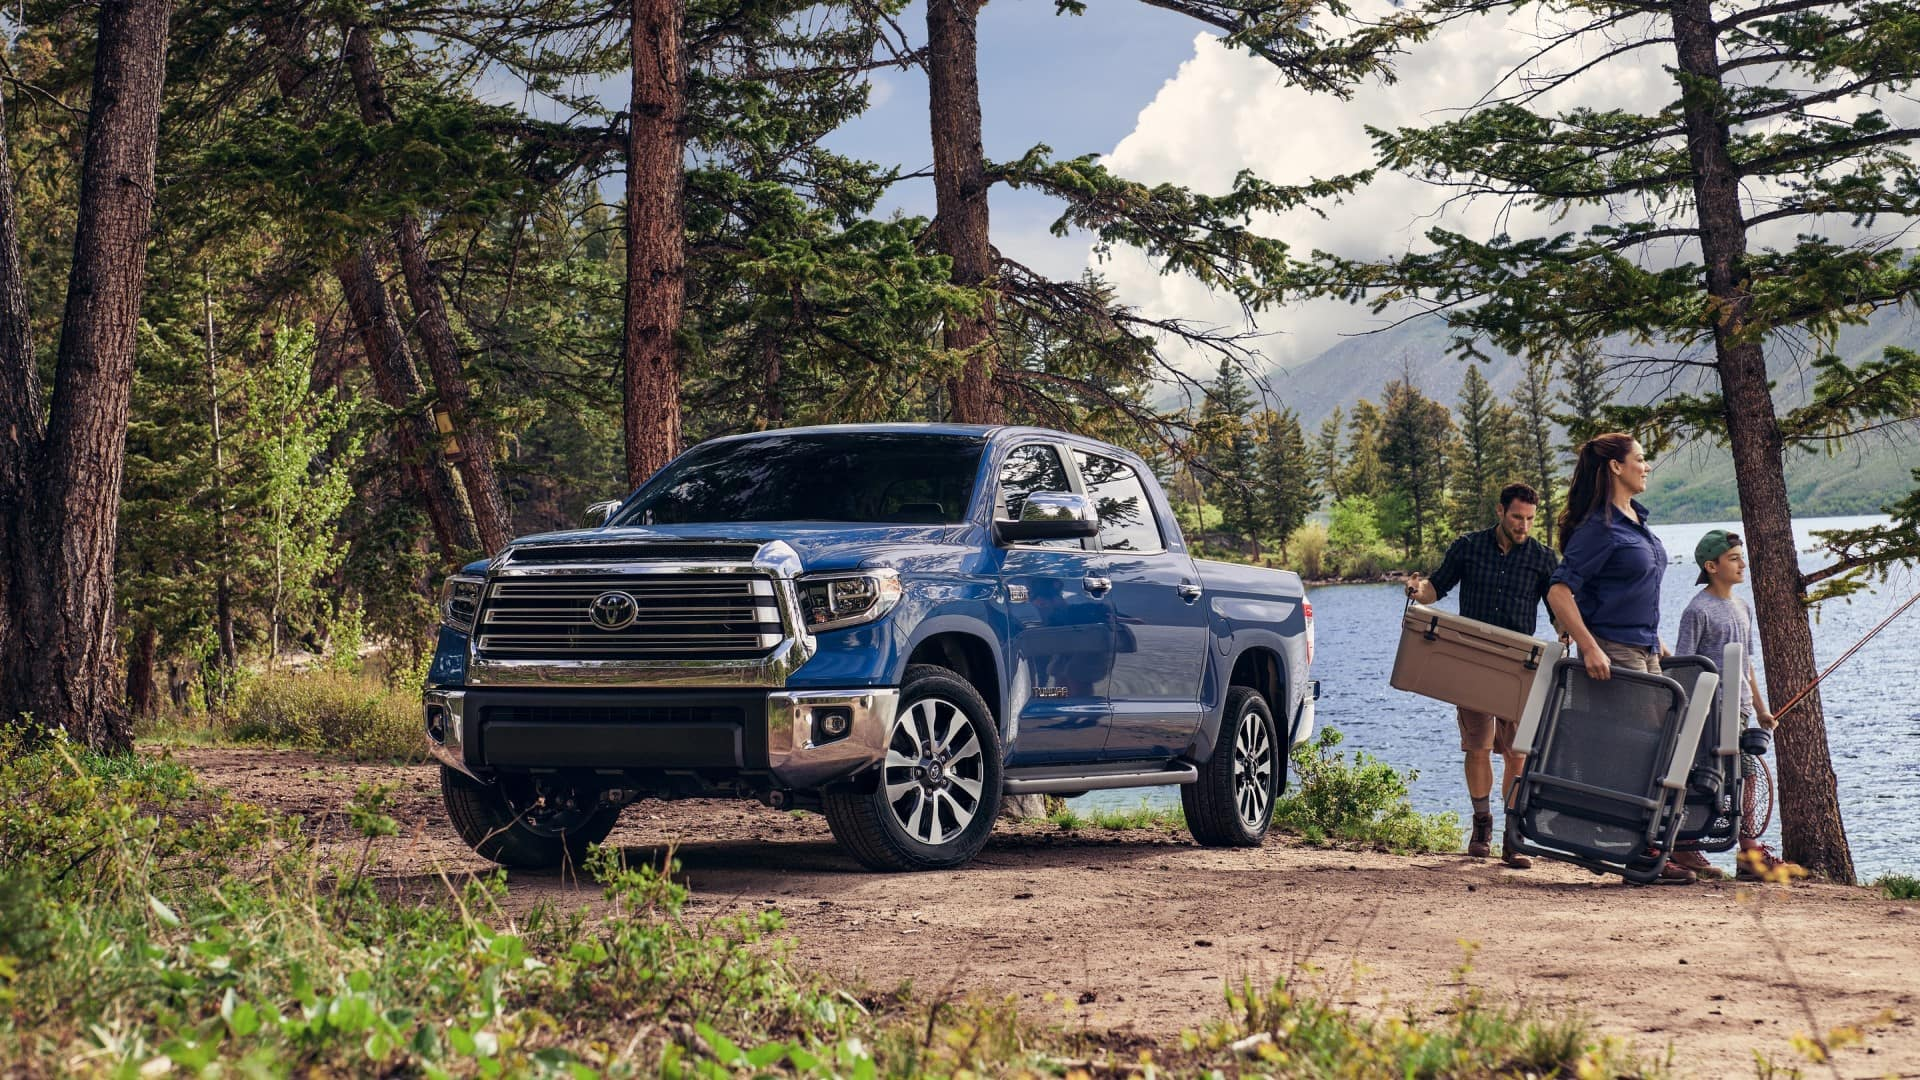 Toyota_Tundra_Camping_Site